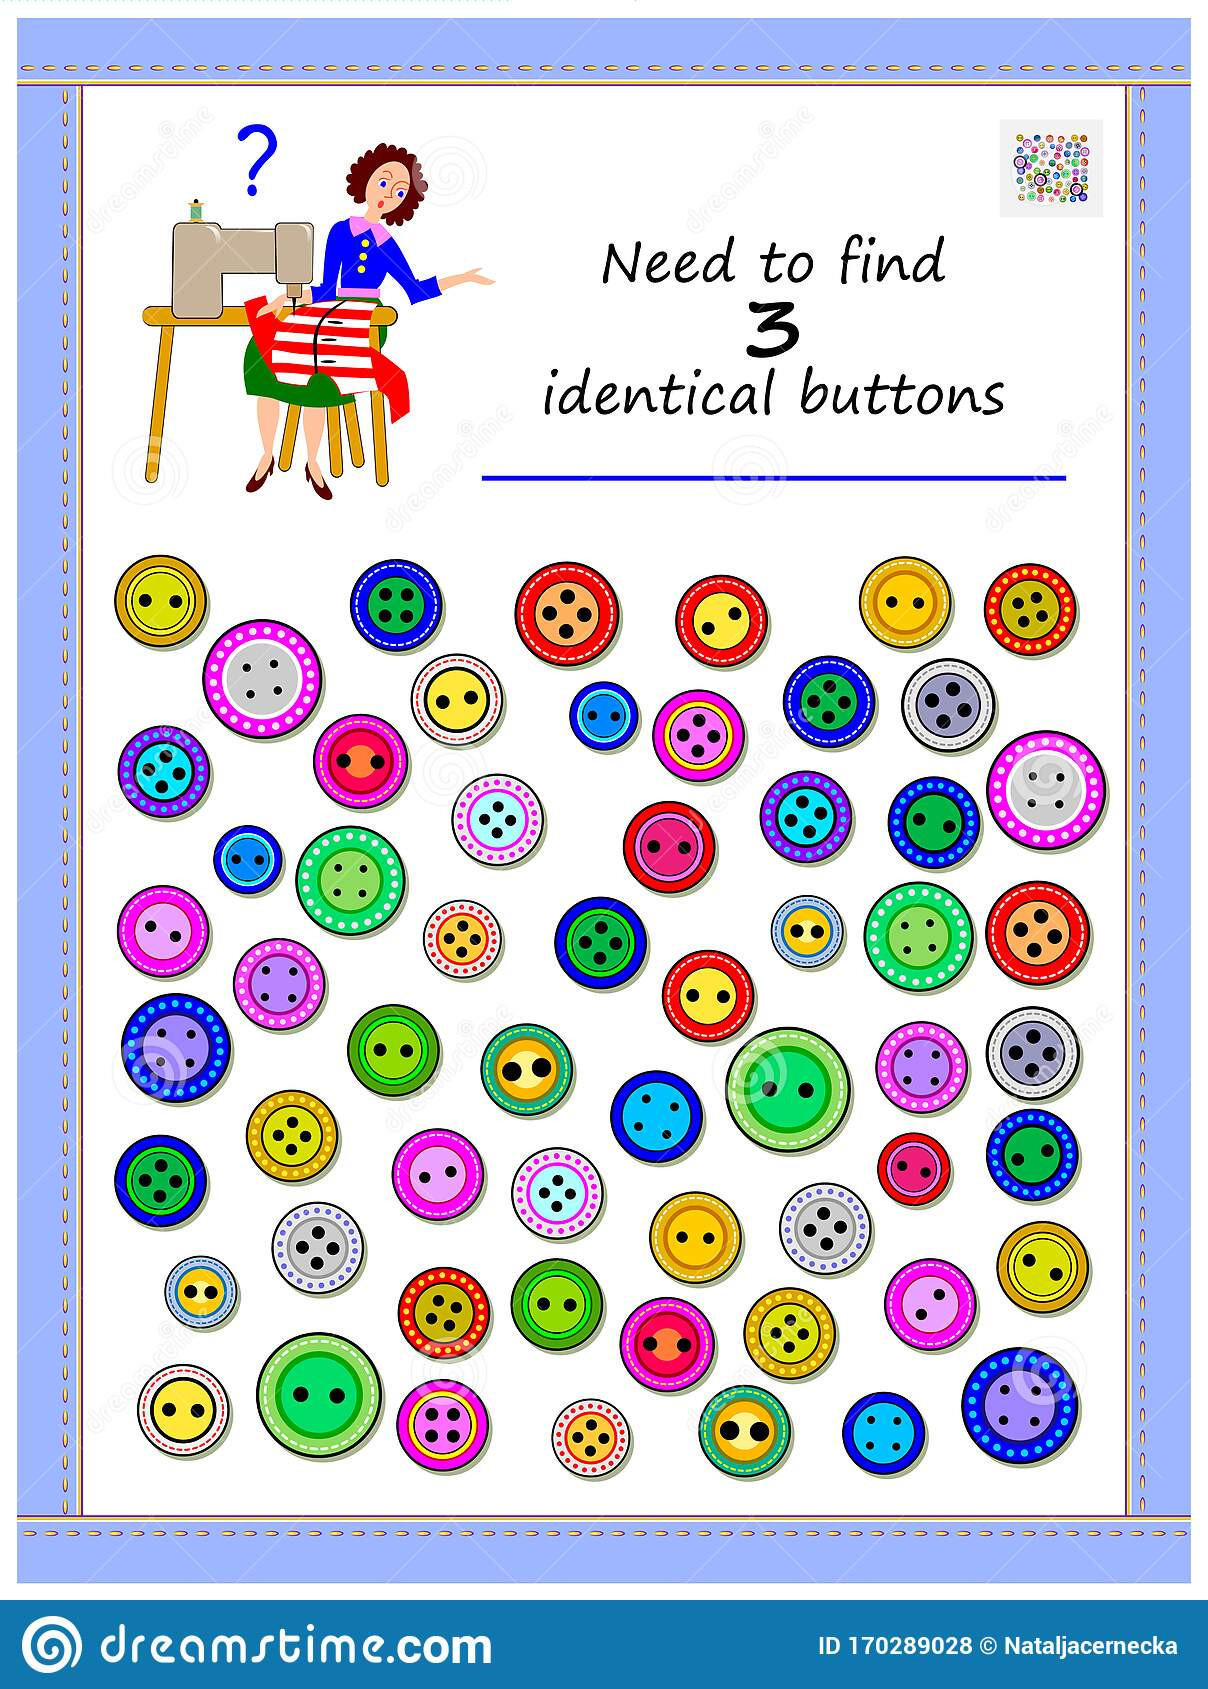 Rebus Brain Teasers Printable Logic Puzzle Game for Children and Adults Need to Find